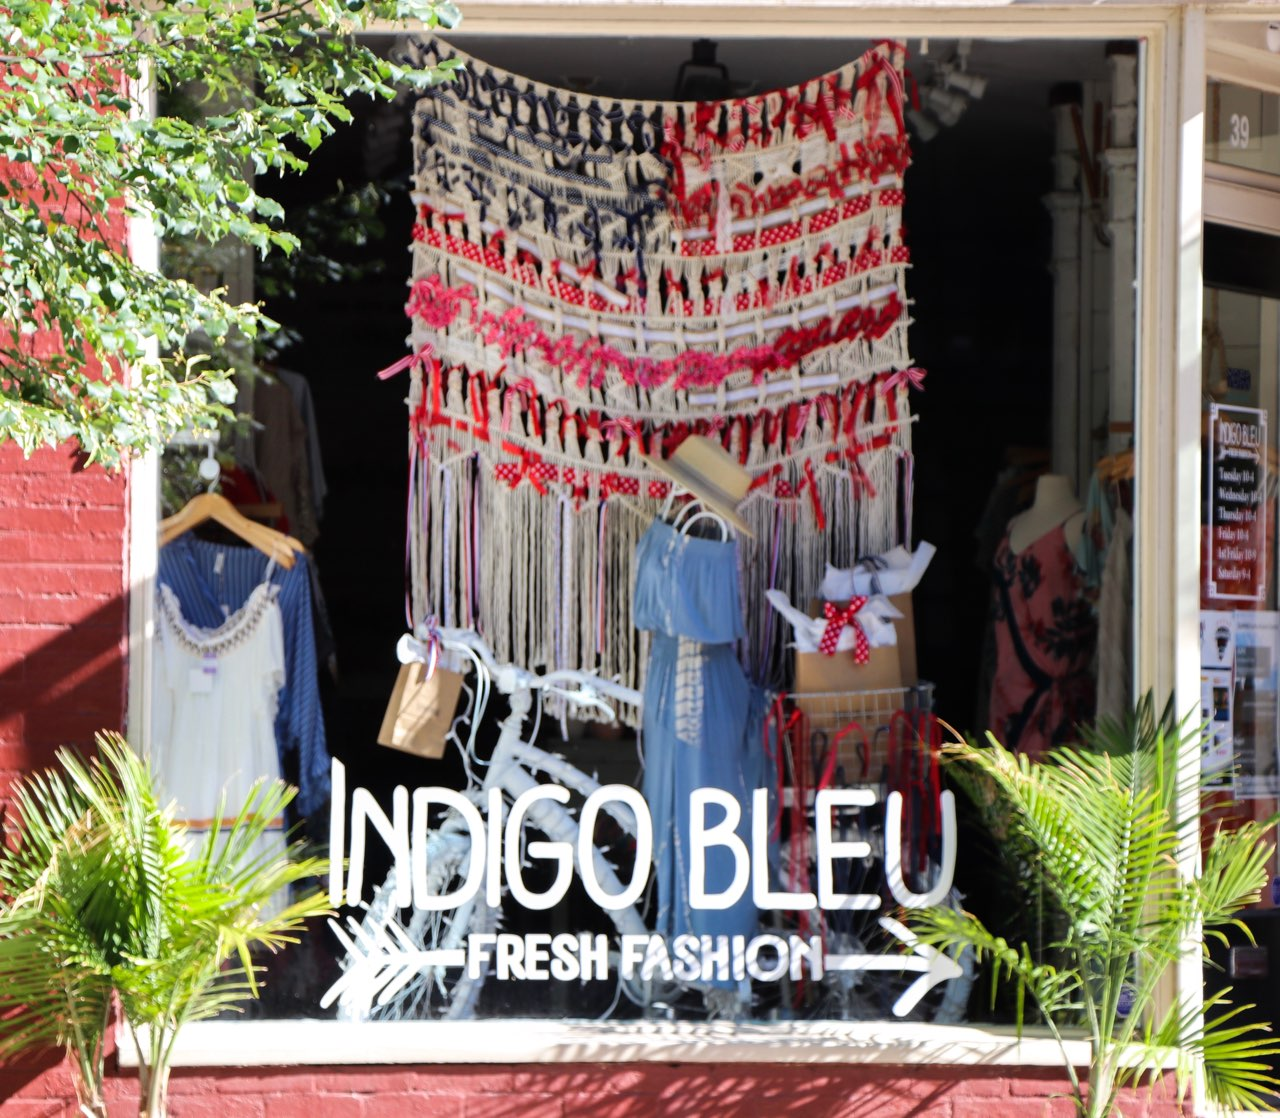 PATRIOTIC WINDOW DISPLAY AT INDIGO BLEU